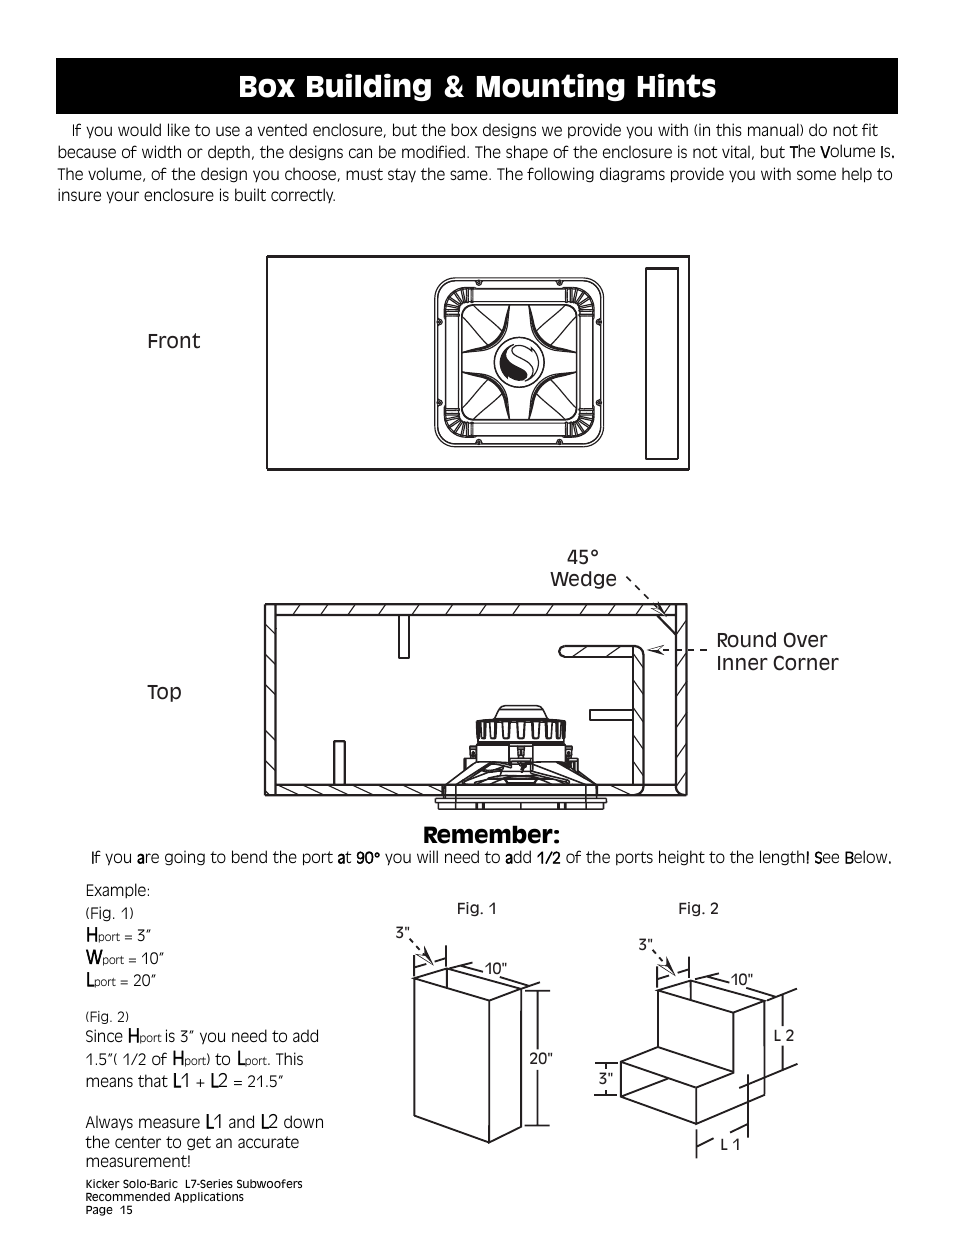 Box building & mounting hints, Remember | Kicker L7 User Manual | Page 15 /  36